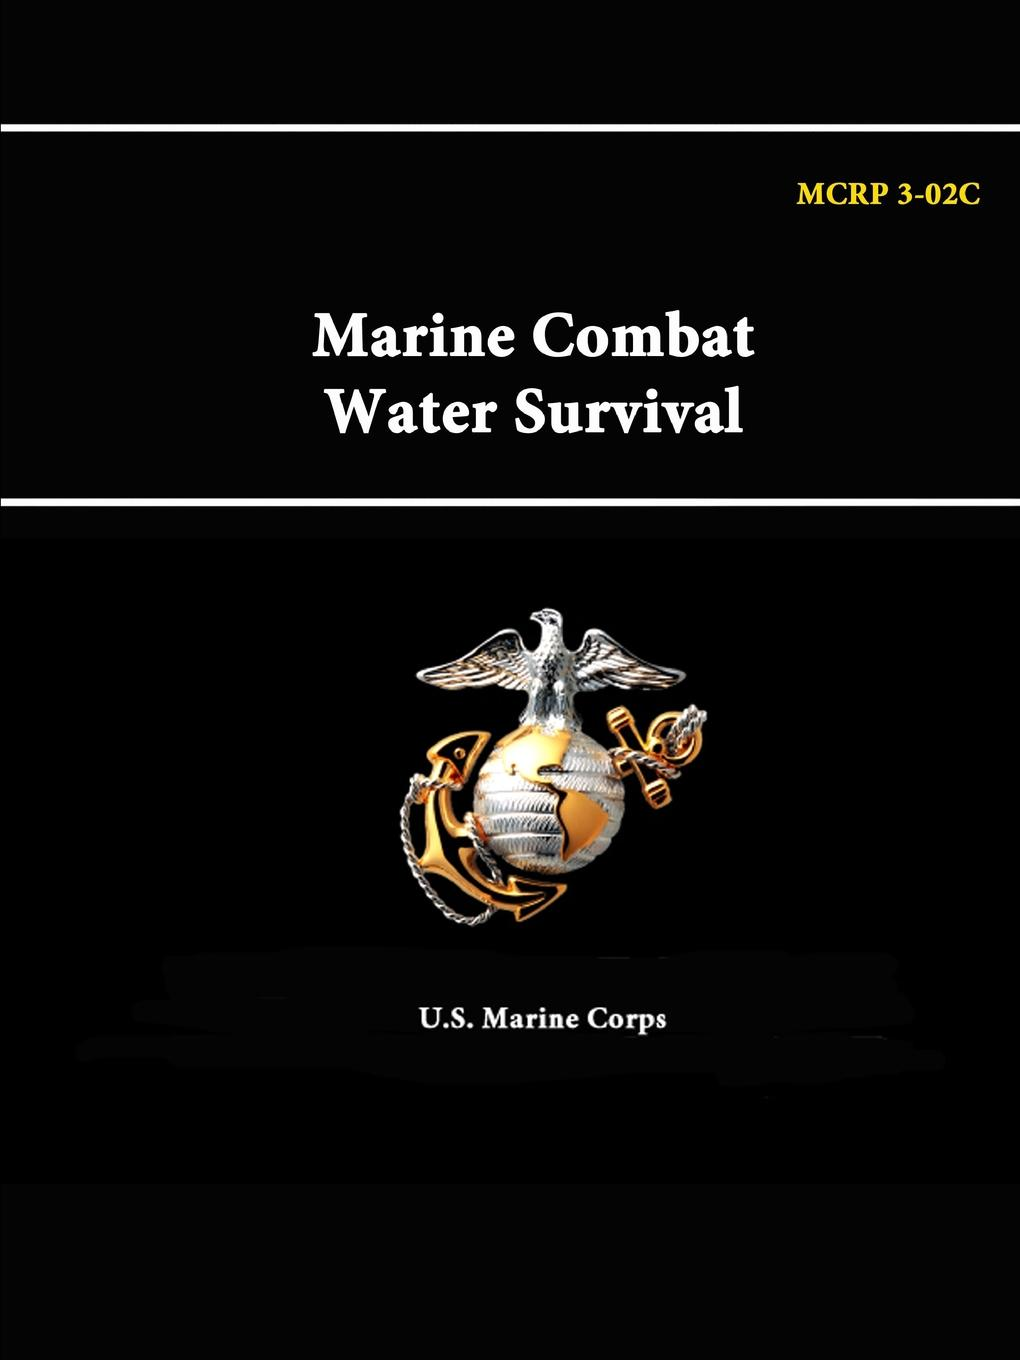 U.S. Marine Corps Marine Combat Water Survival - MCRP 3-02C commercial used water park inflatable triangle water slide for kids